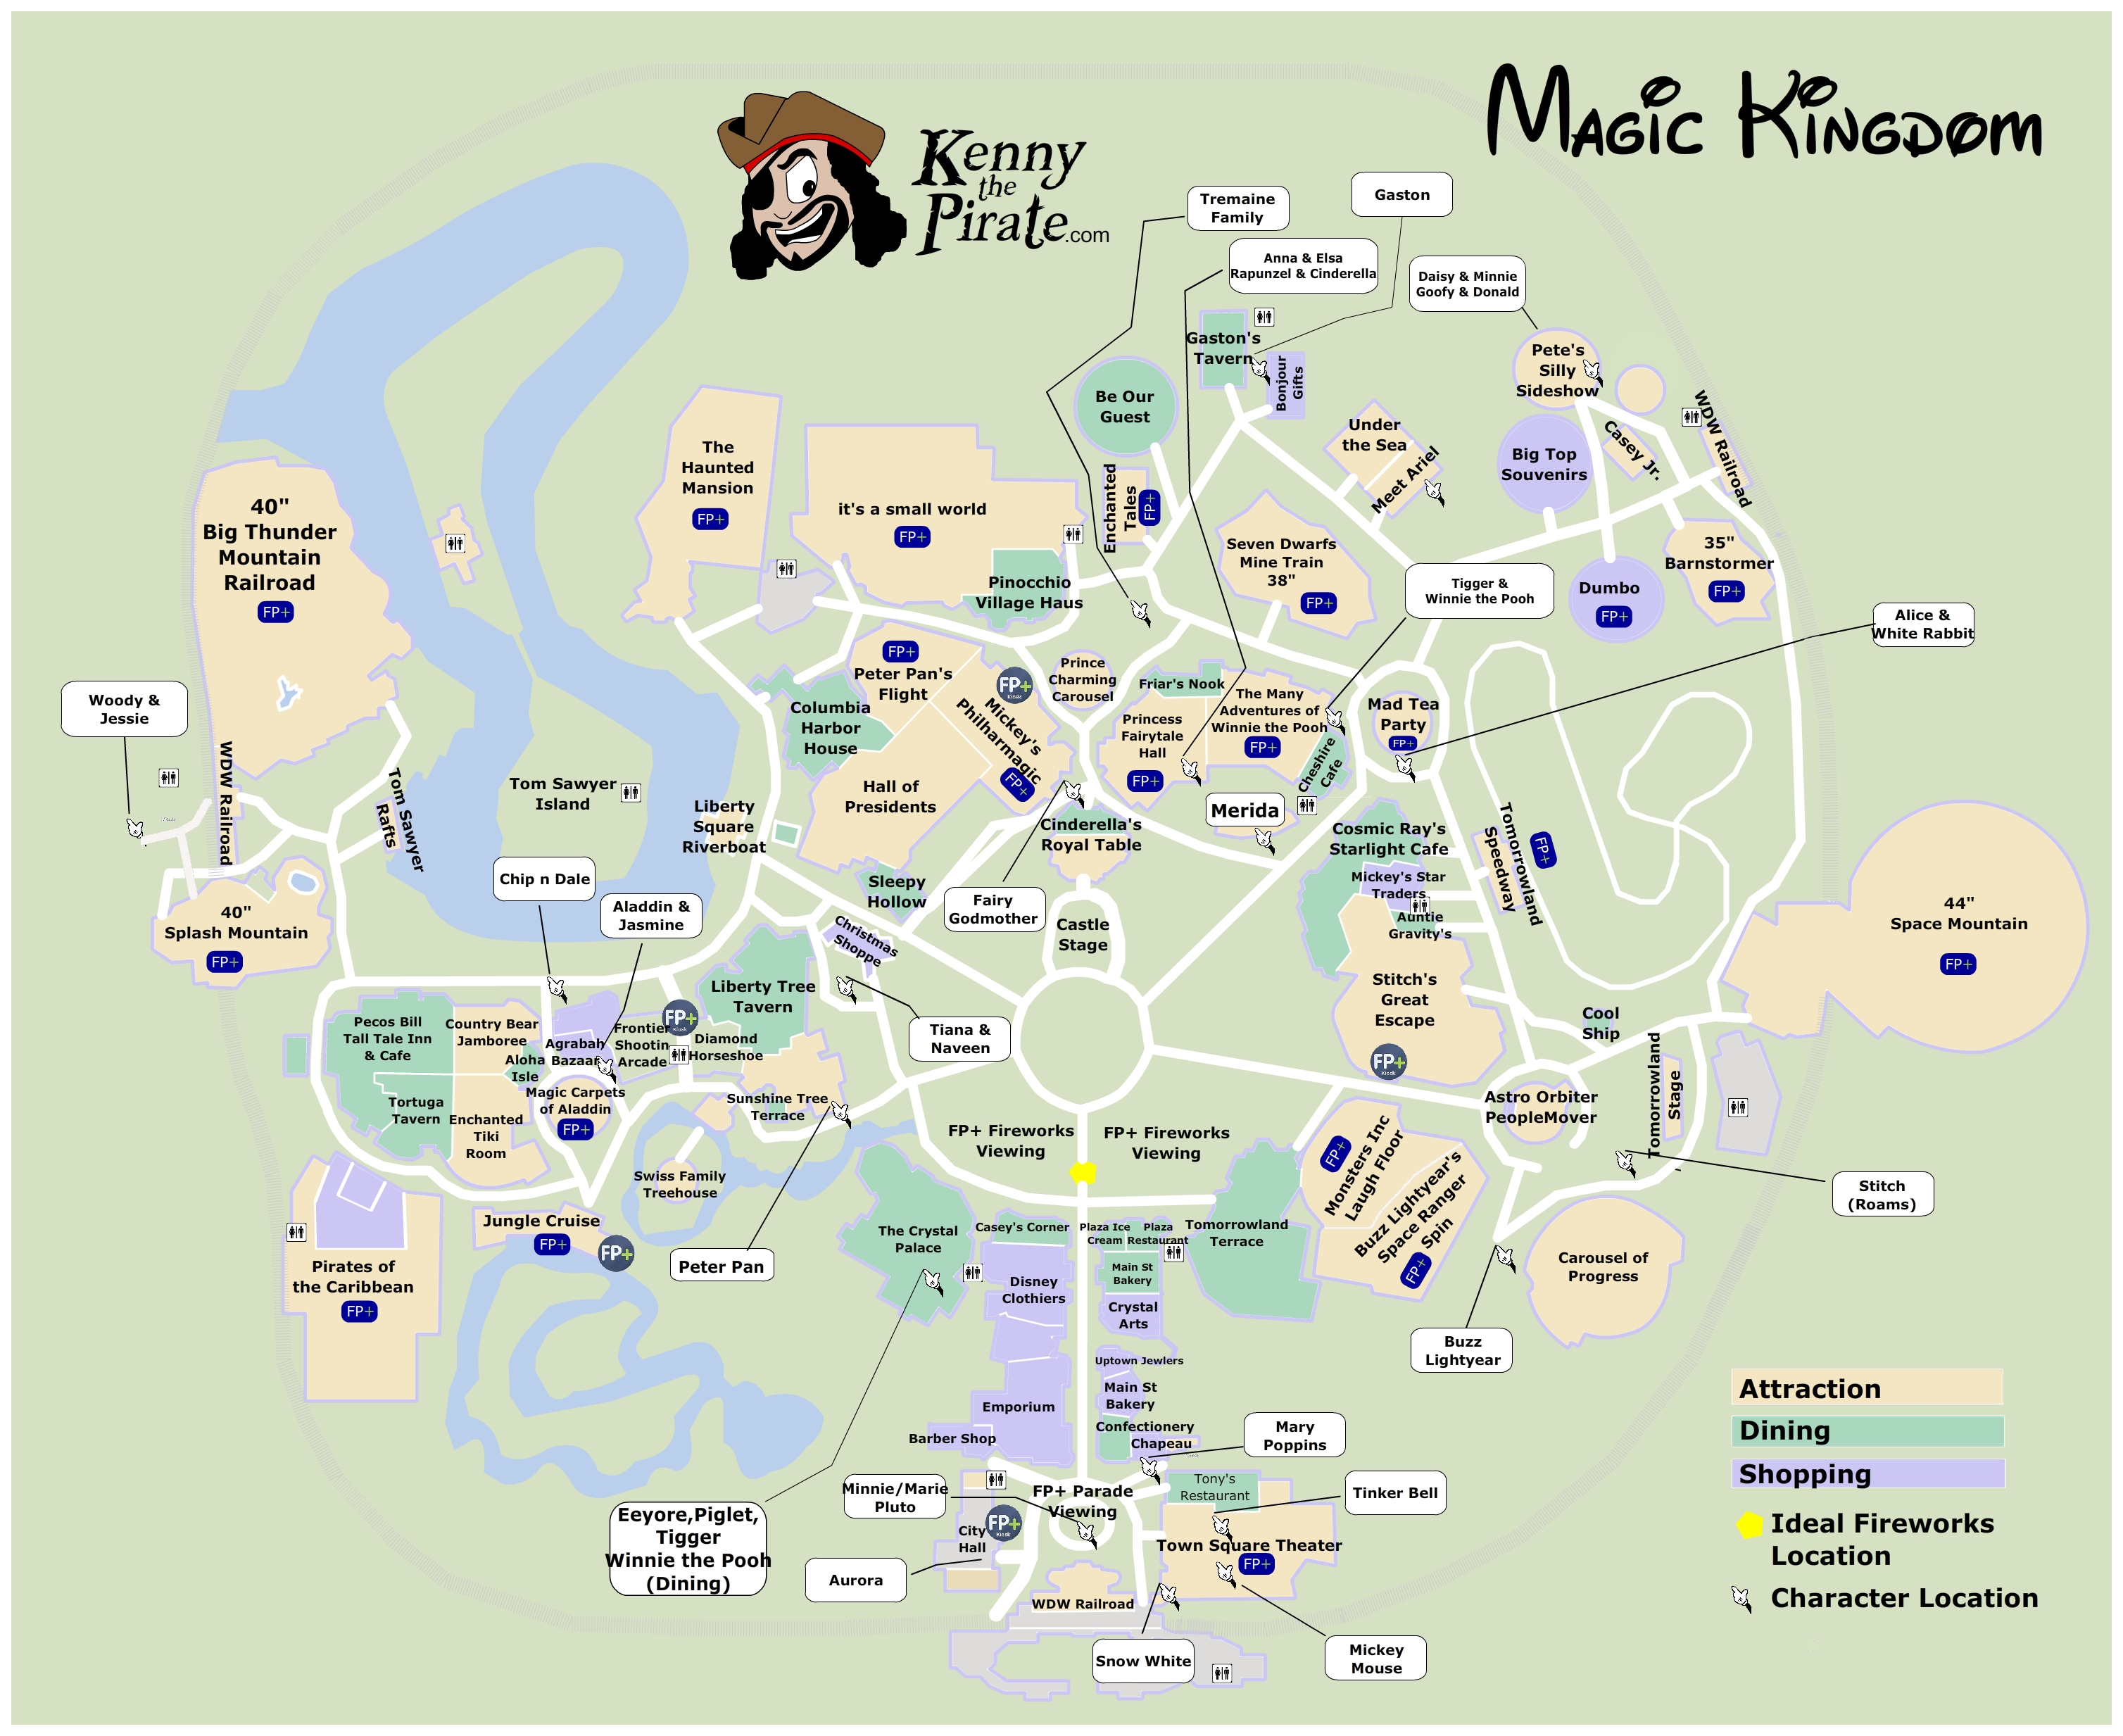 Magic Kingdom Character Location Map KennythePirate